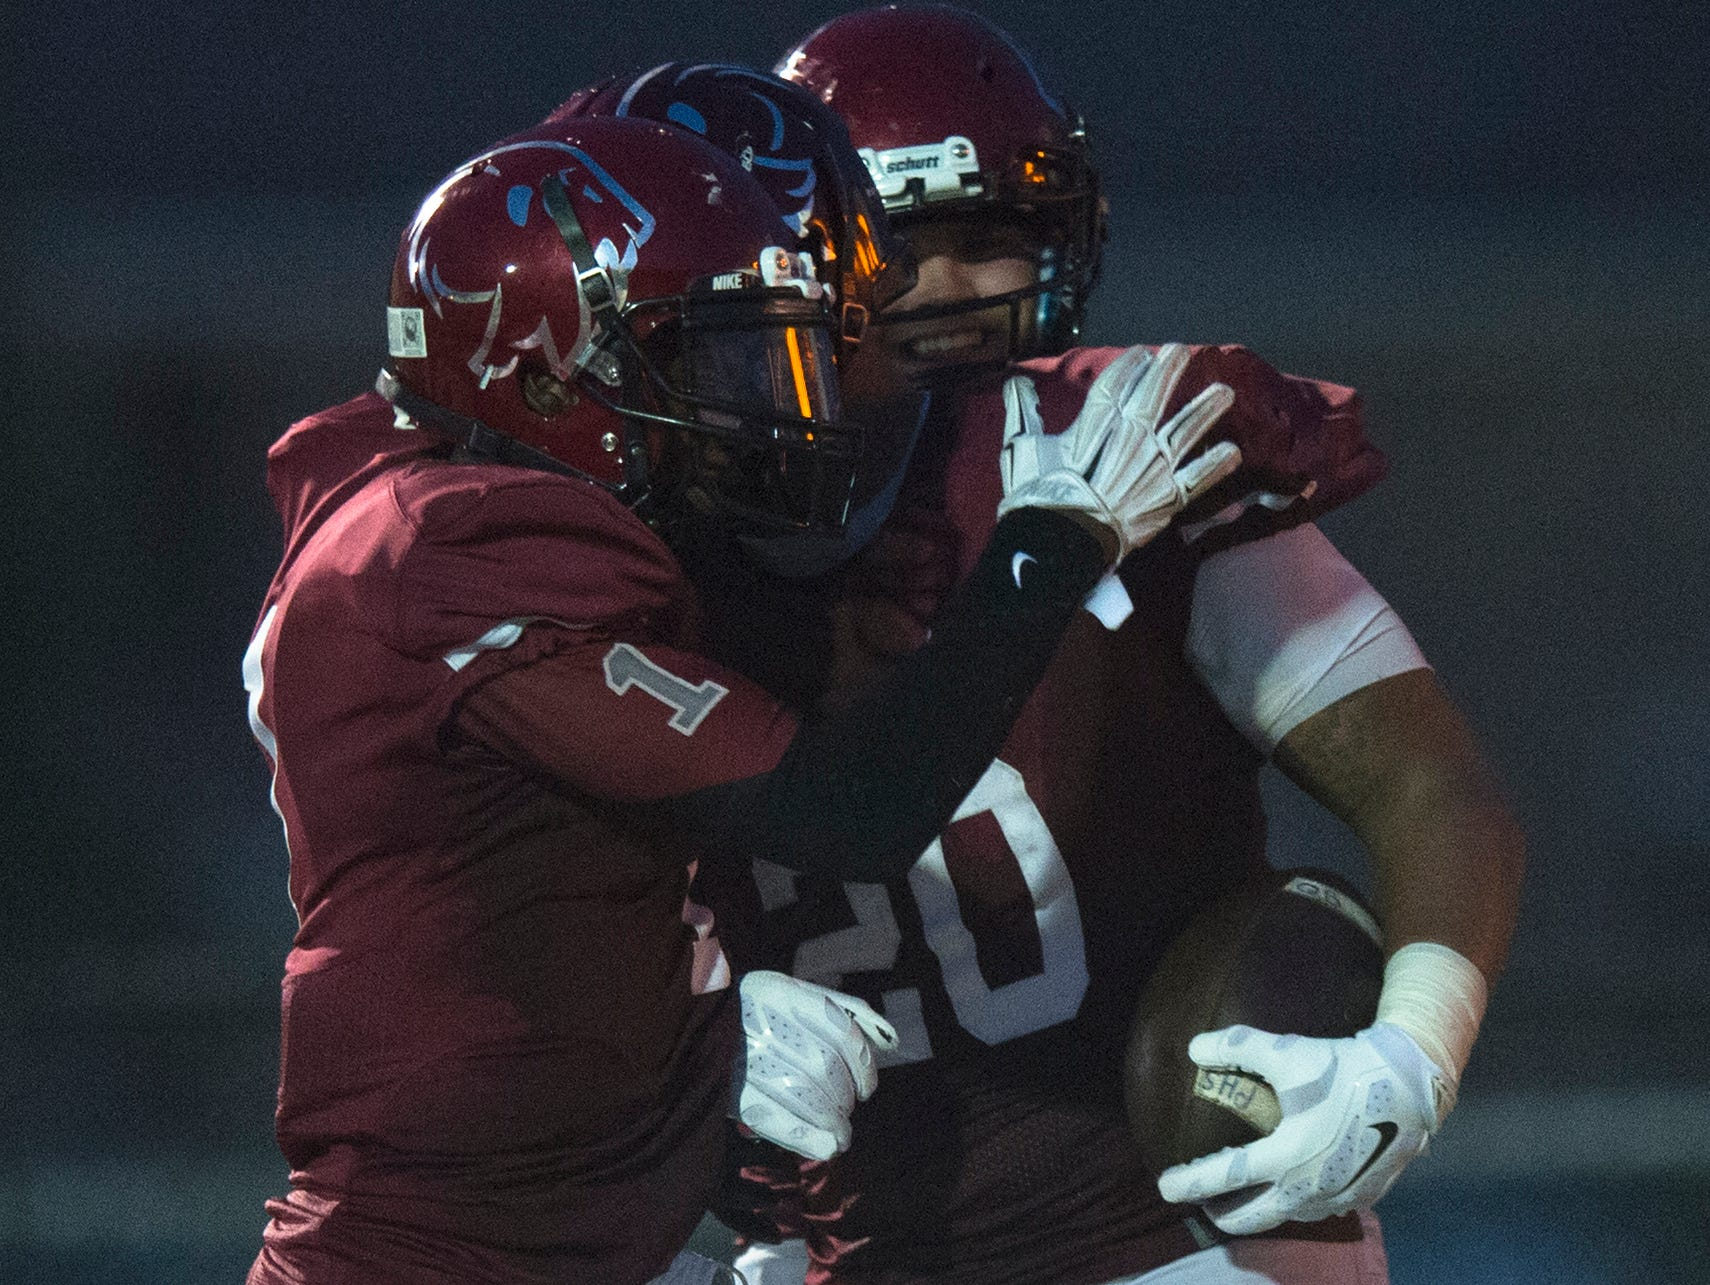 Prattville's Kingston Davis celebrates with DeKeith Whatley after scoring a touchdown during the game on Friday, Sept. 4, 2015 in Prattville, Ala.